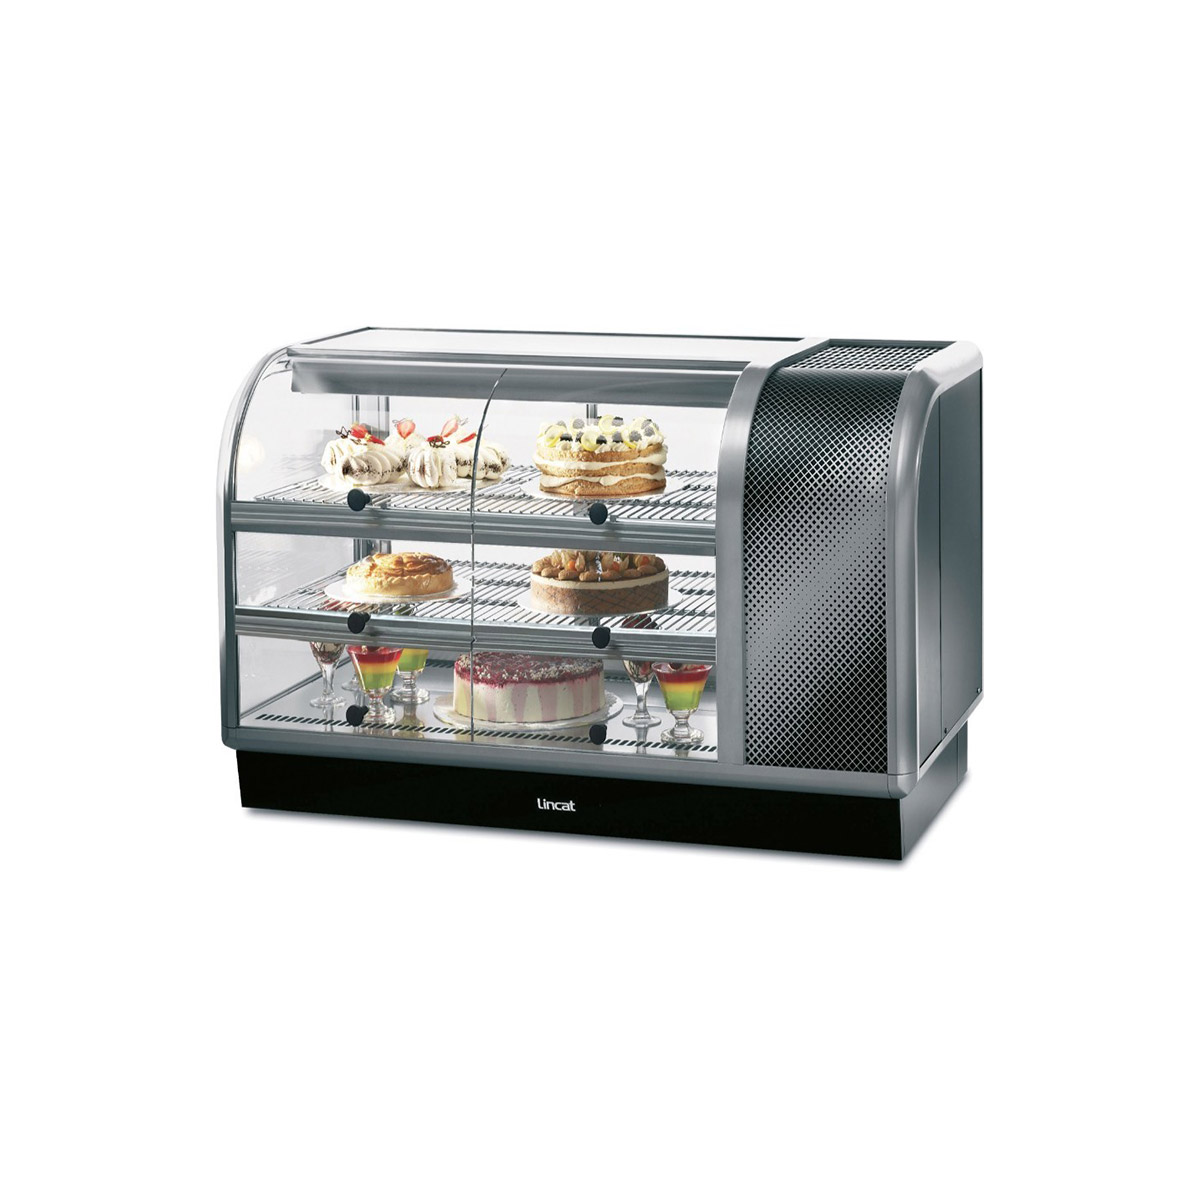 C6R/130SR - Lincat Seal 650 Series Counter-top Curved Front Refrigerated Merchandiser - Self-Service - Side-Mounted Power Pack [Right] - W 1300 mm - 0.7 kW